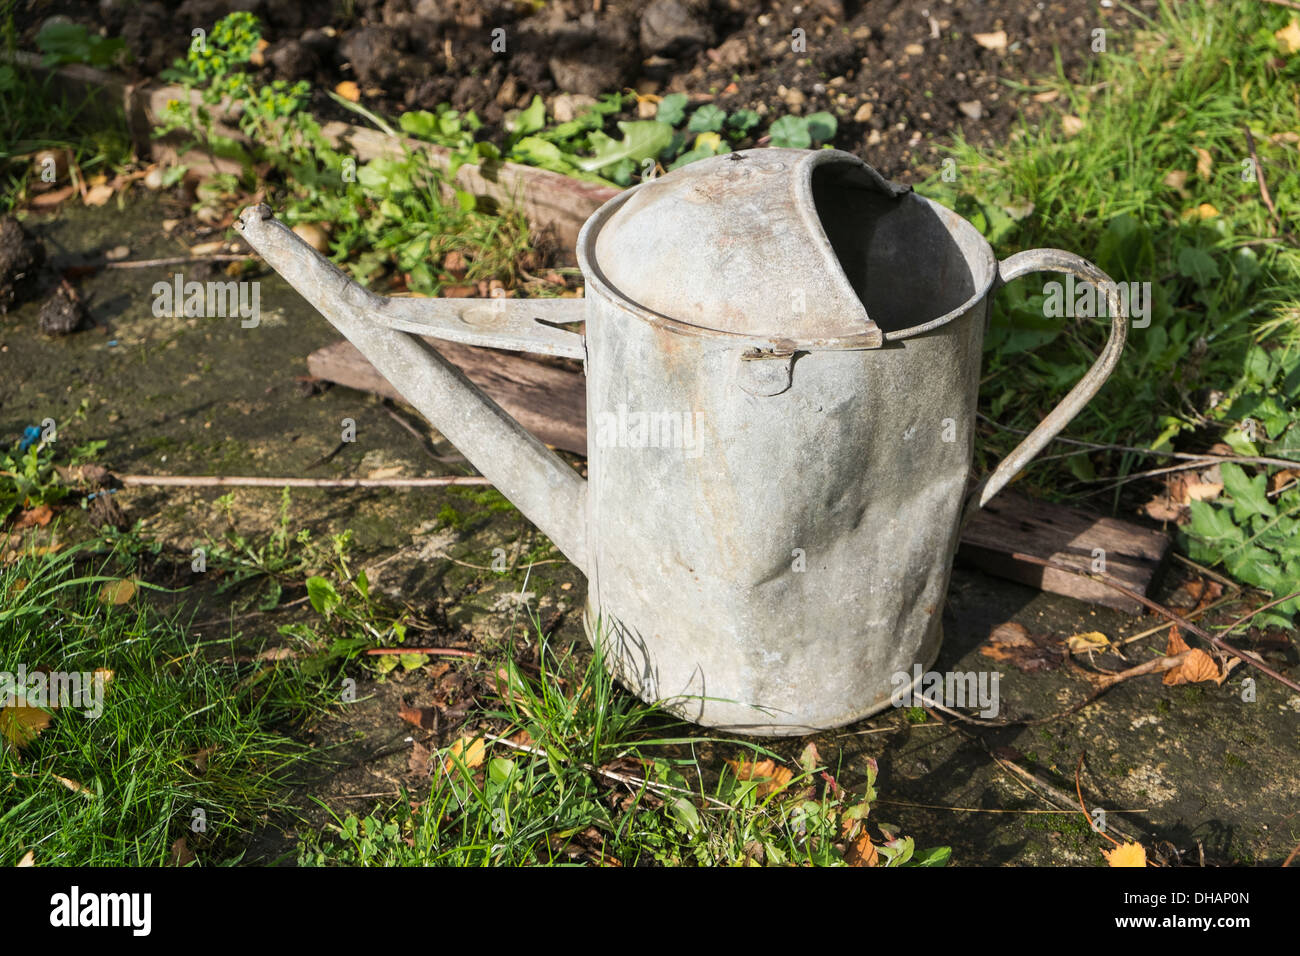 Old watering can on garden path - Stock Image